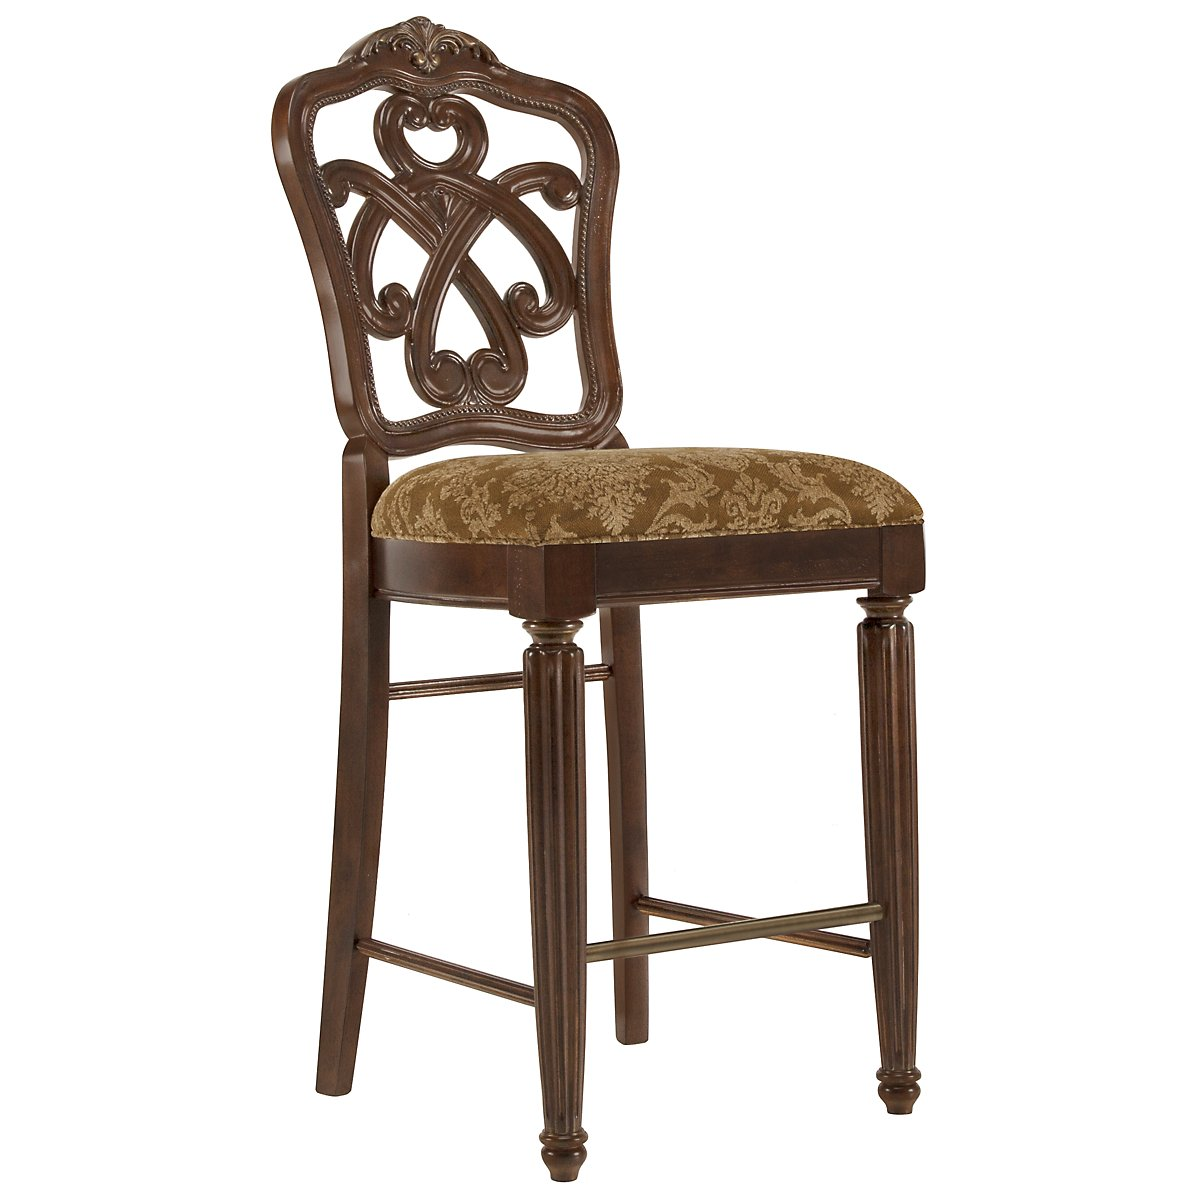 "Regal Dark Tone 30"" Wood Barstool"